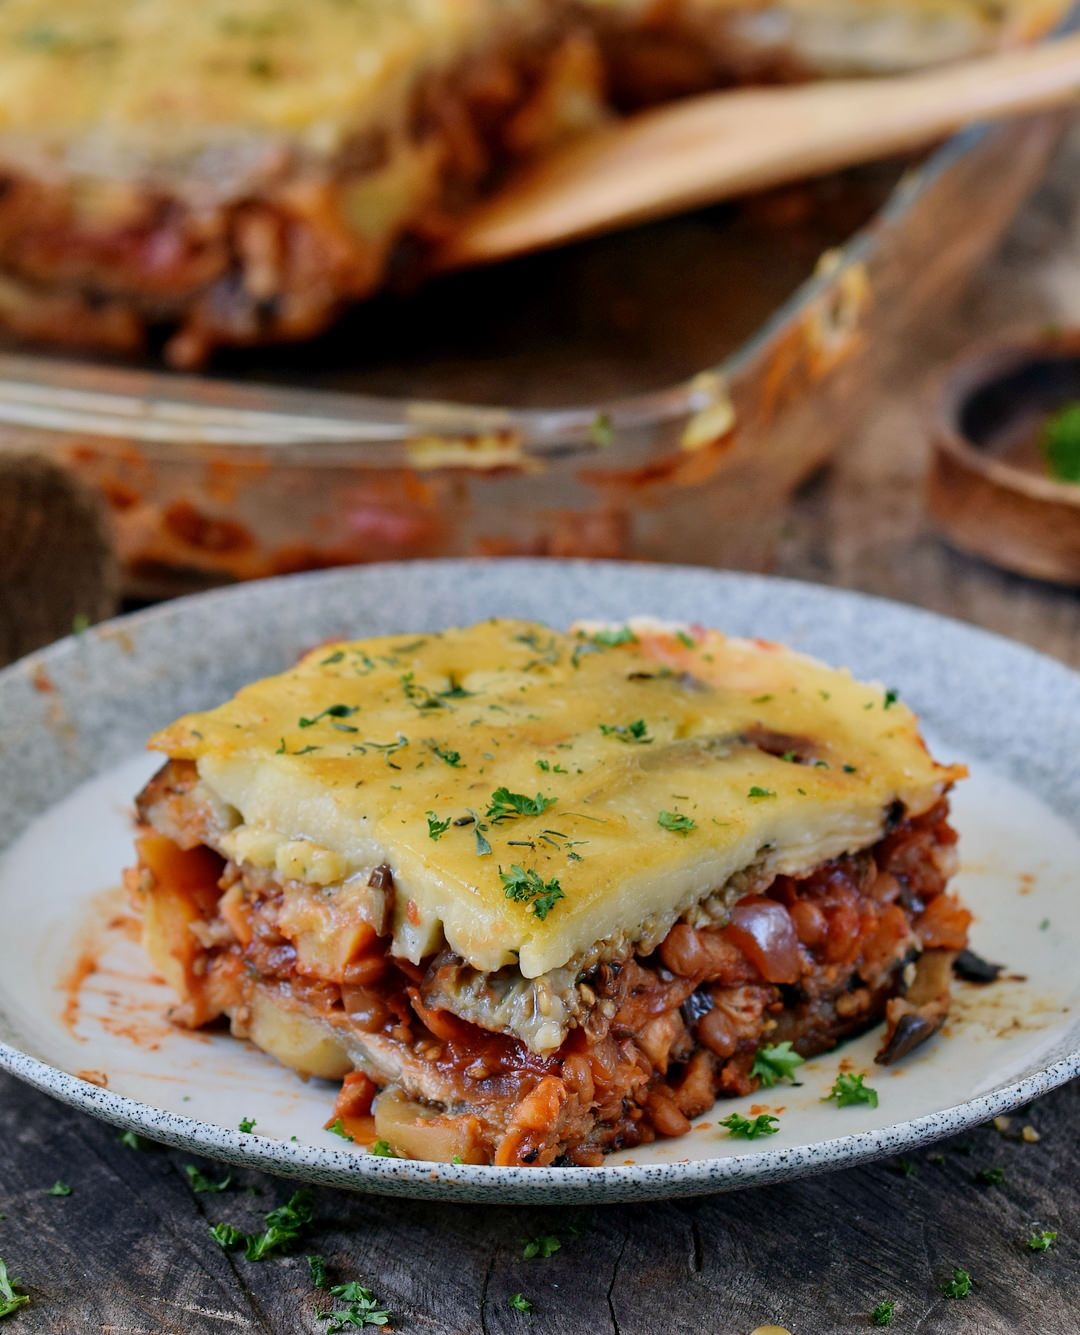 Vegan Moussaka With Lentils And Eggplant This Popular Greek Dish Can Be Easily Made Without Meat A Vegan Moussaka Vegetarian Cooking Vegan Recipes Plant Based